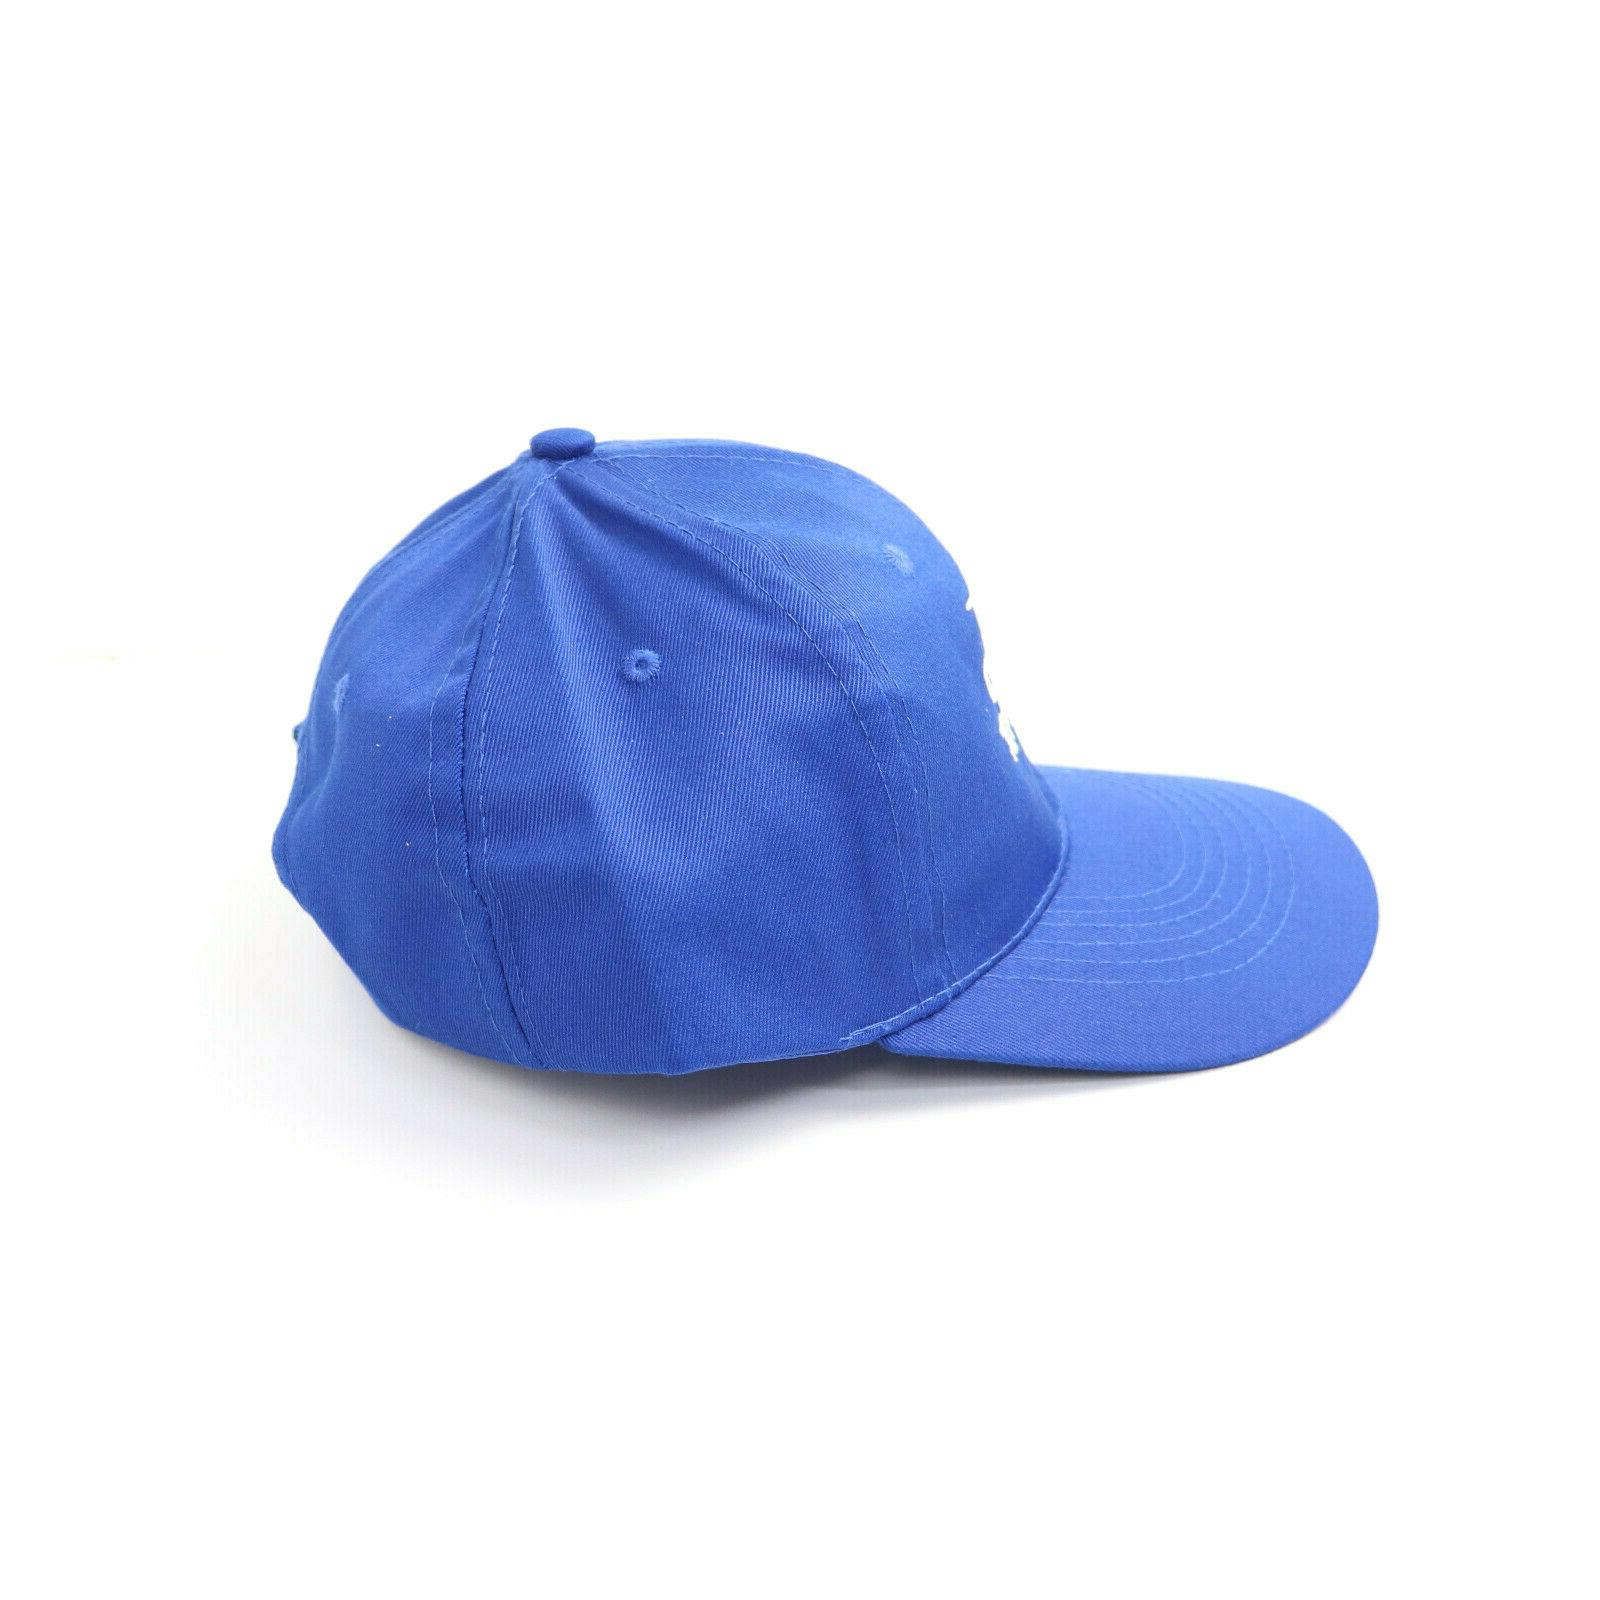 Bud Hat Embroidered Blue Strap